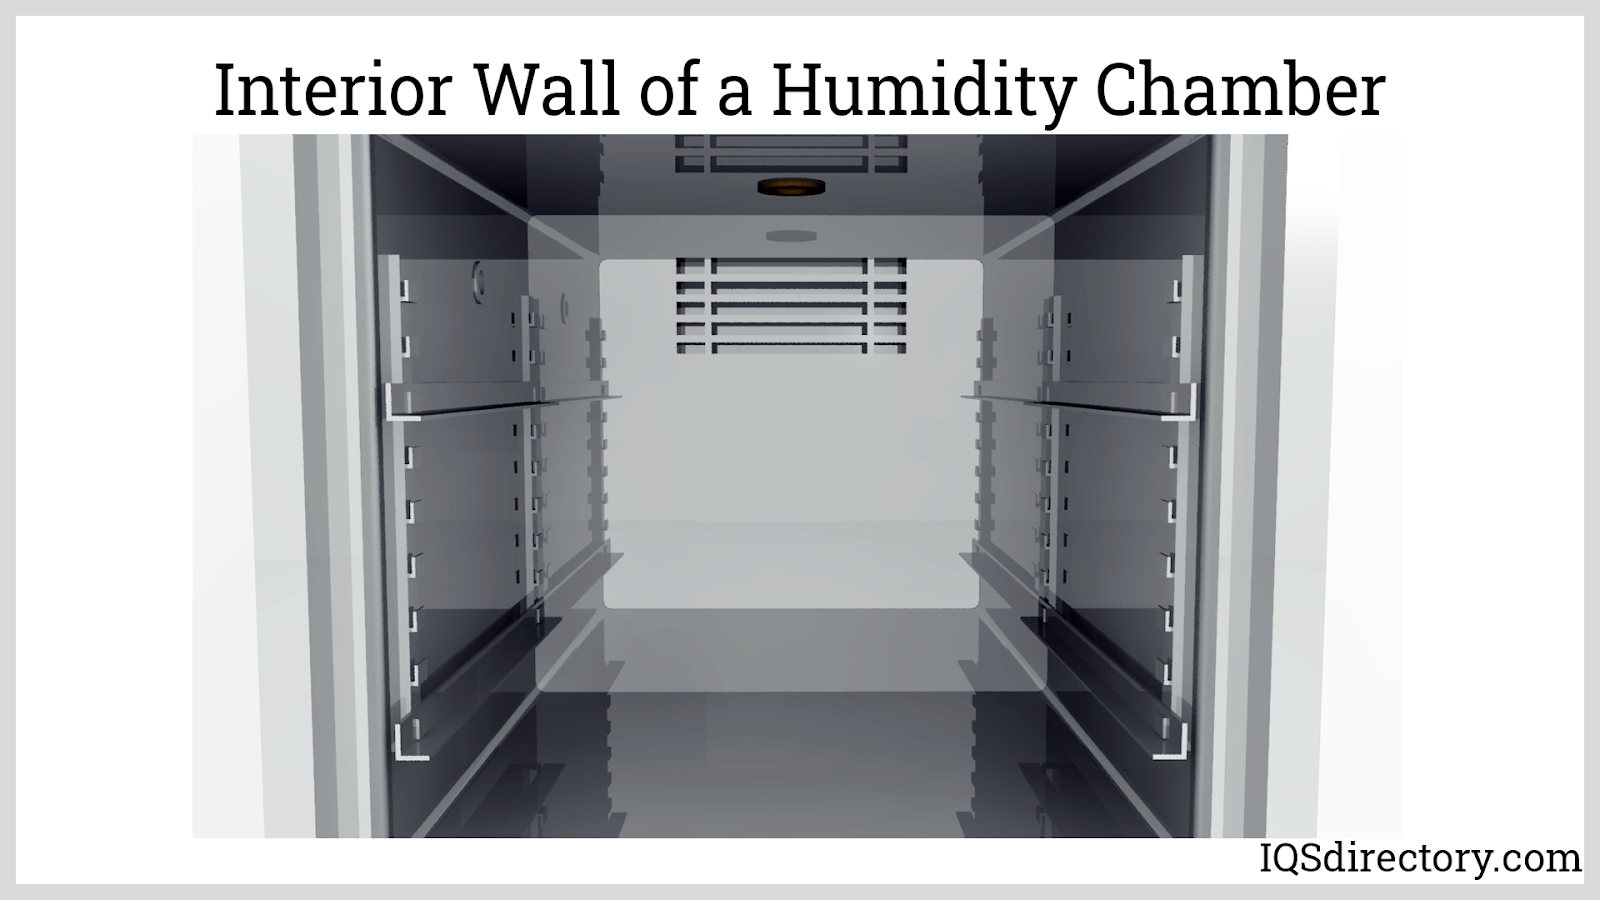 Interior Wall of a Humidity Chamber